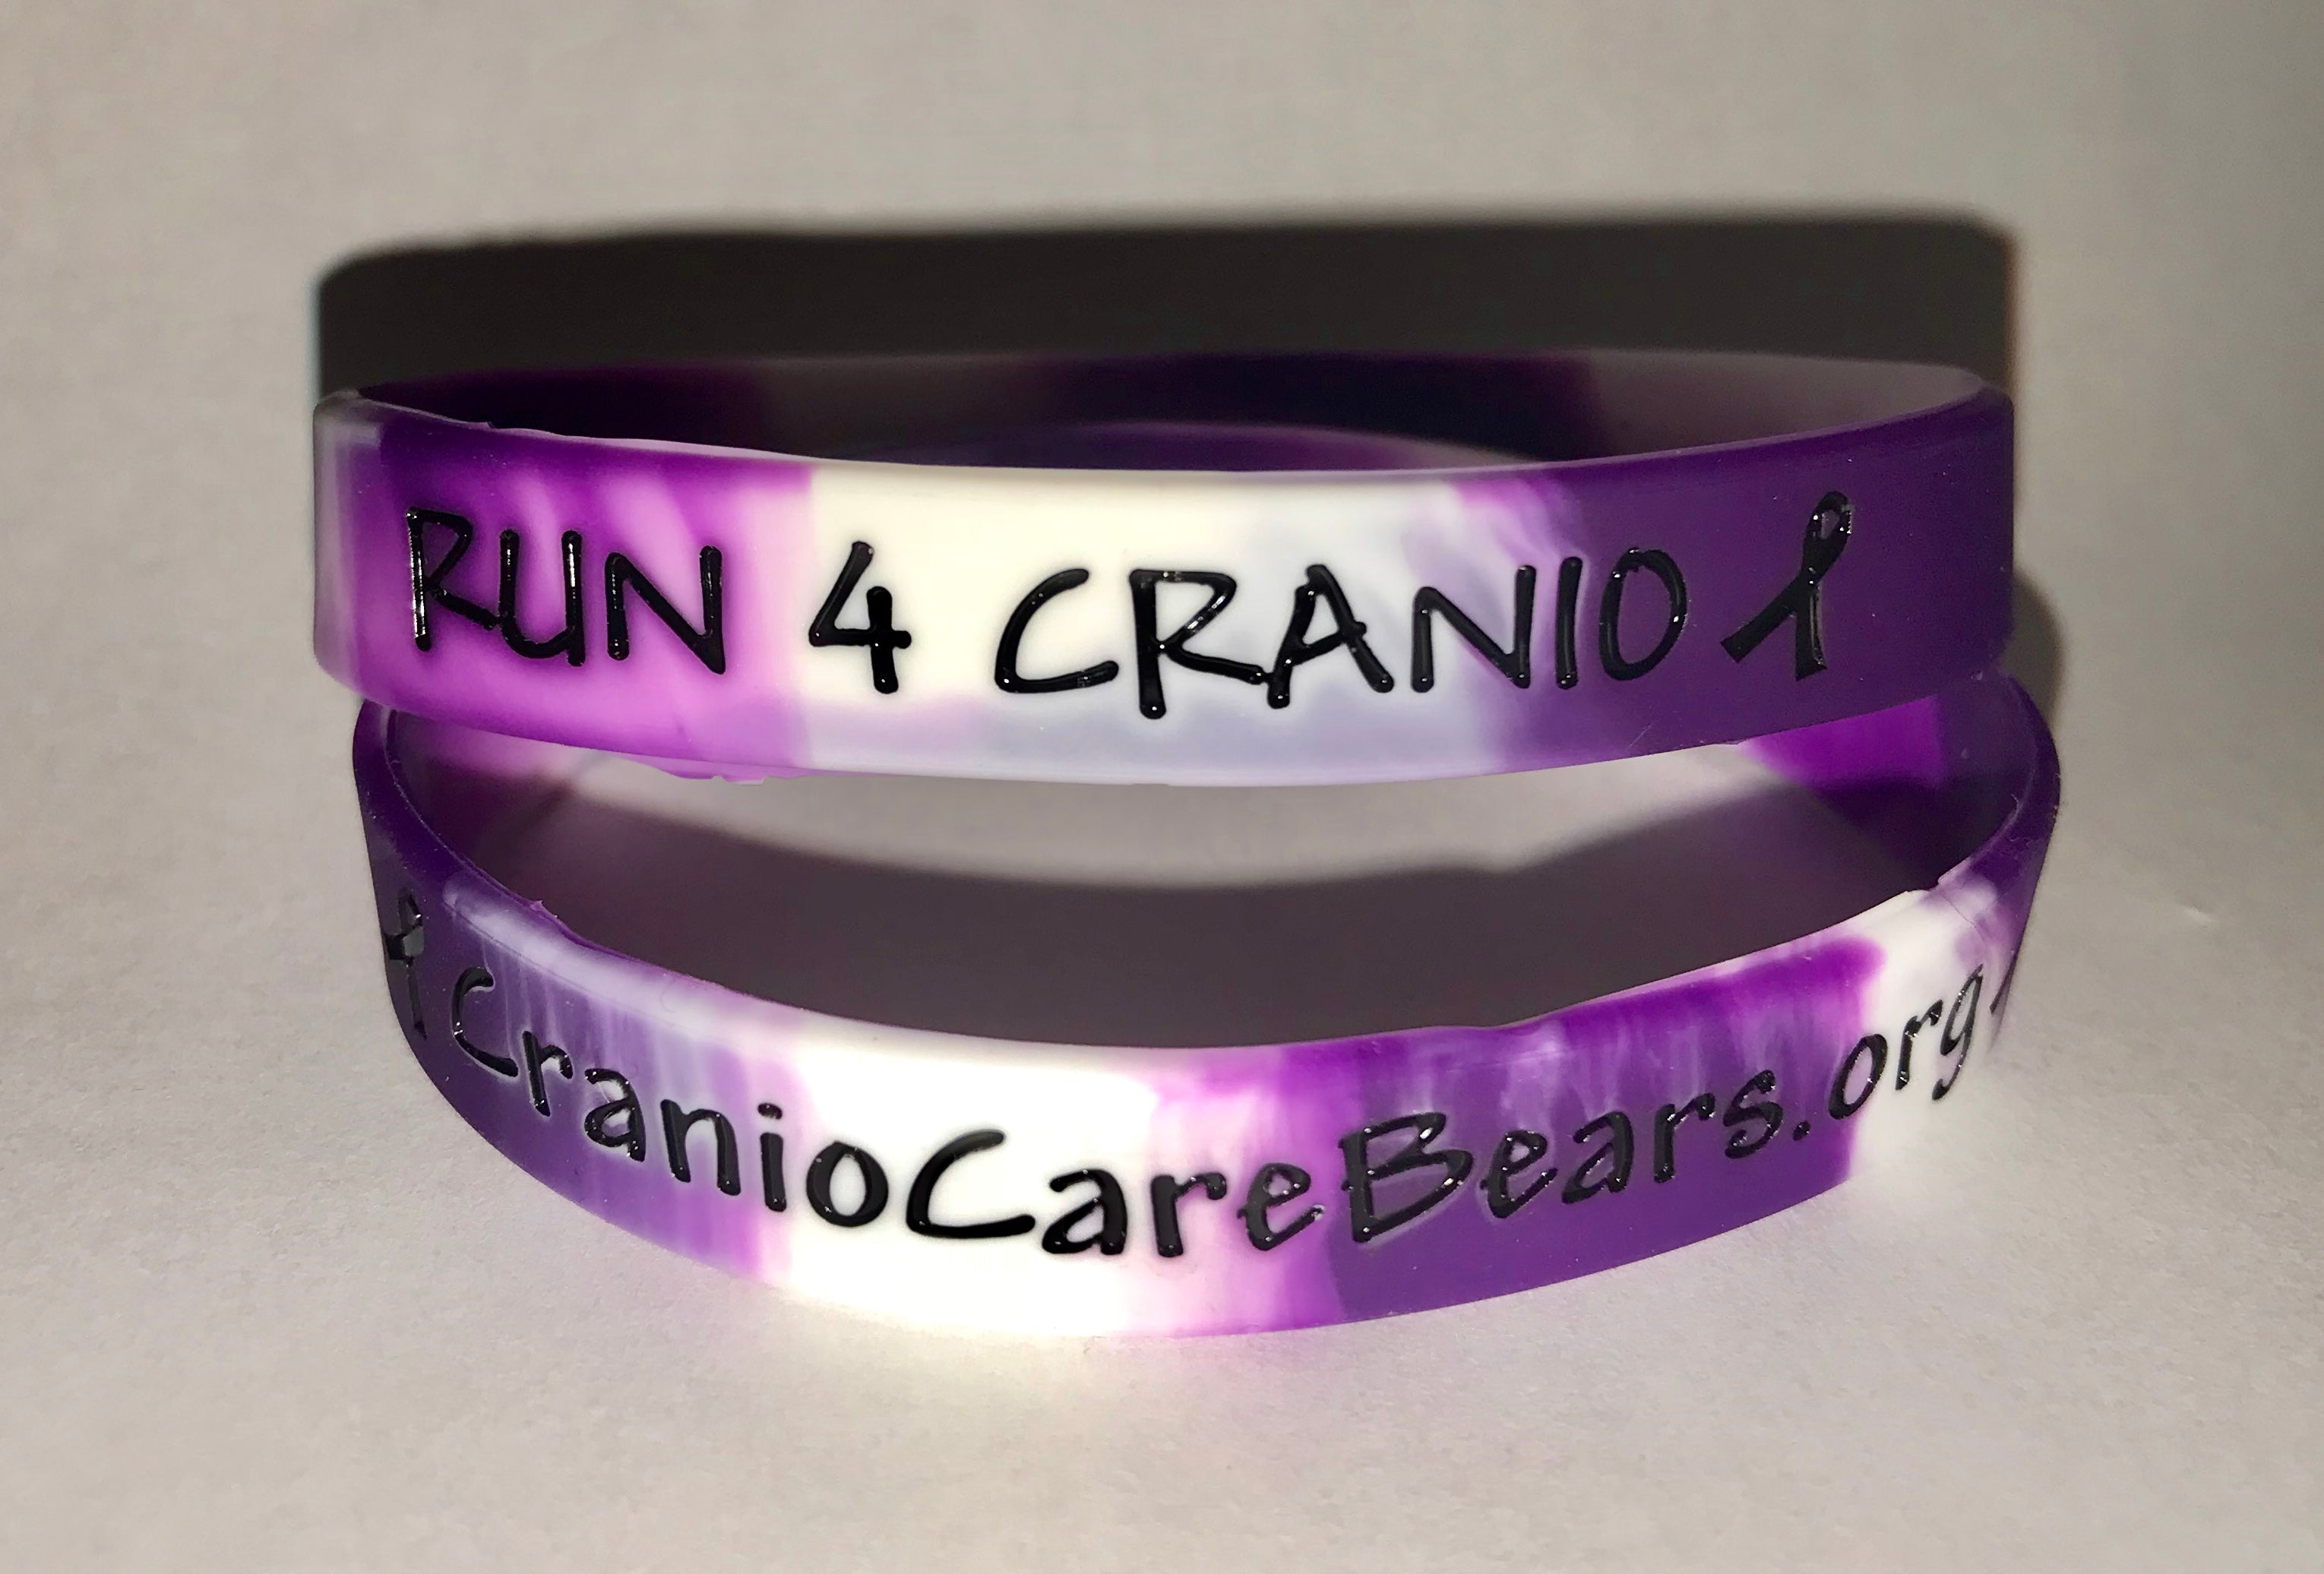 Run4Cranio Purple & White Wristband